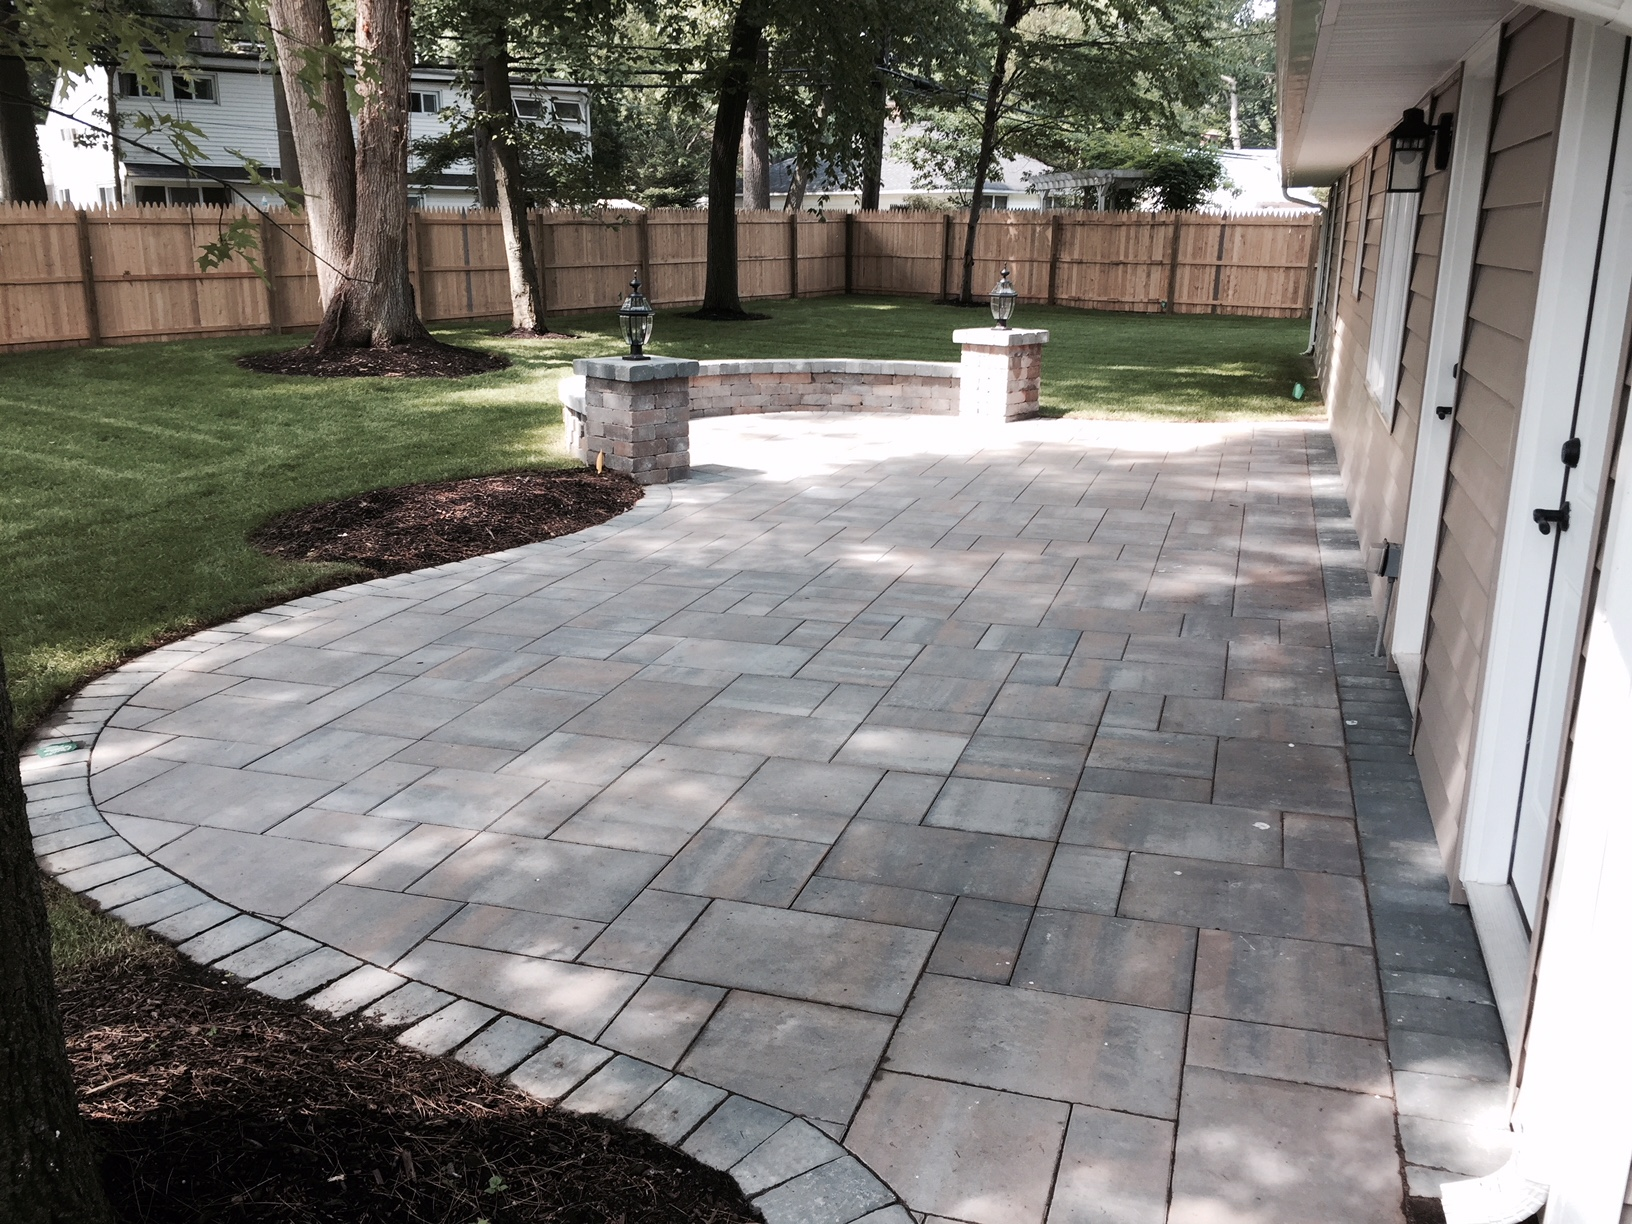 Mighty Pavers Can Design An Extraordinary Patio From Your Own Ideas And  Vision   Or Create A Completely Customized Patio Based On Our Expertise.